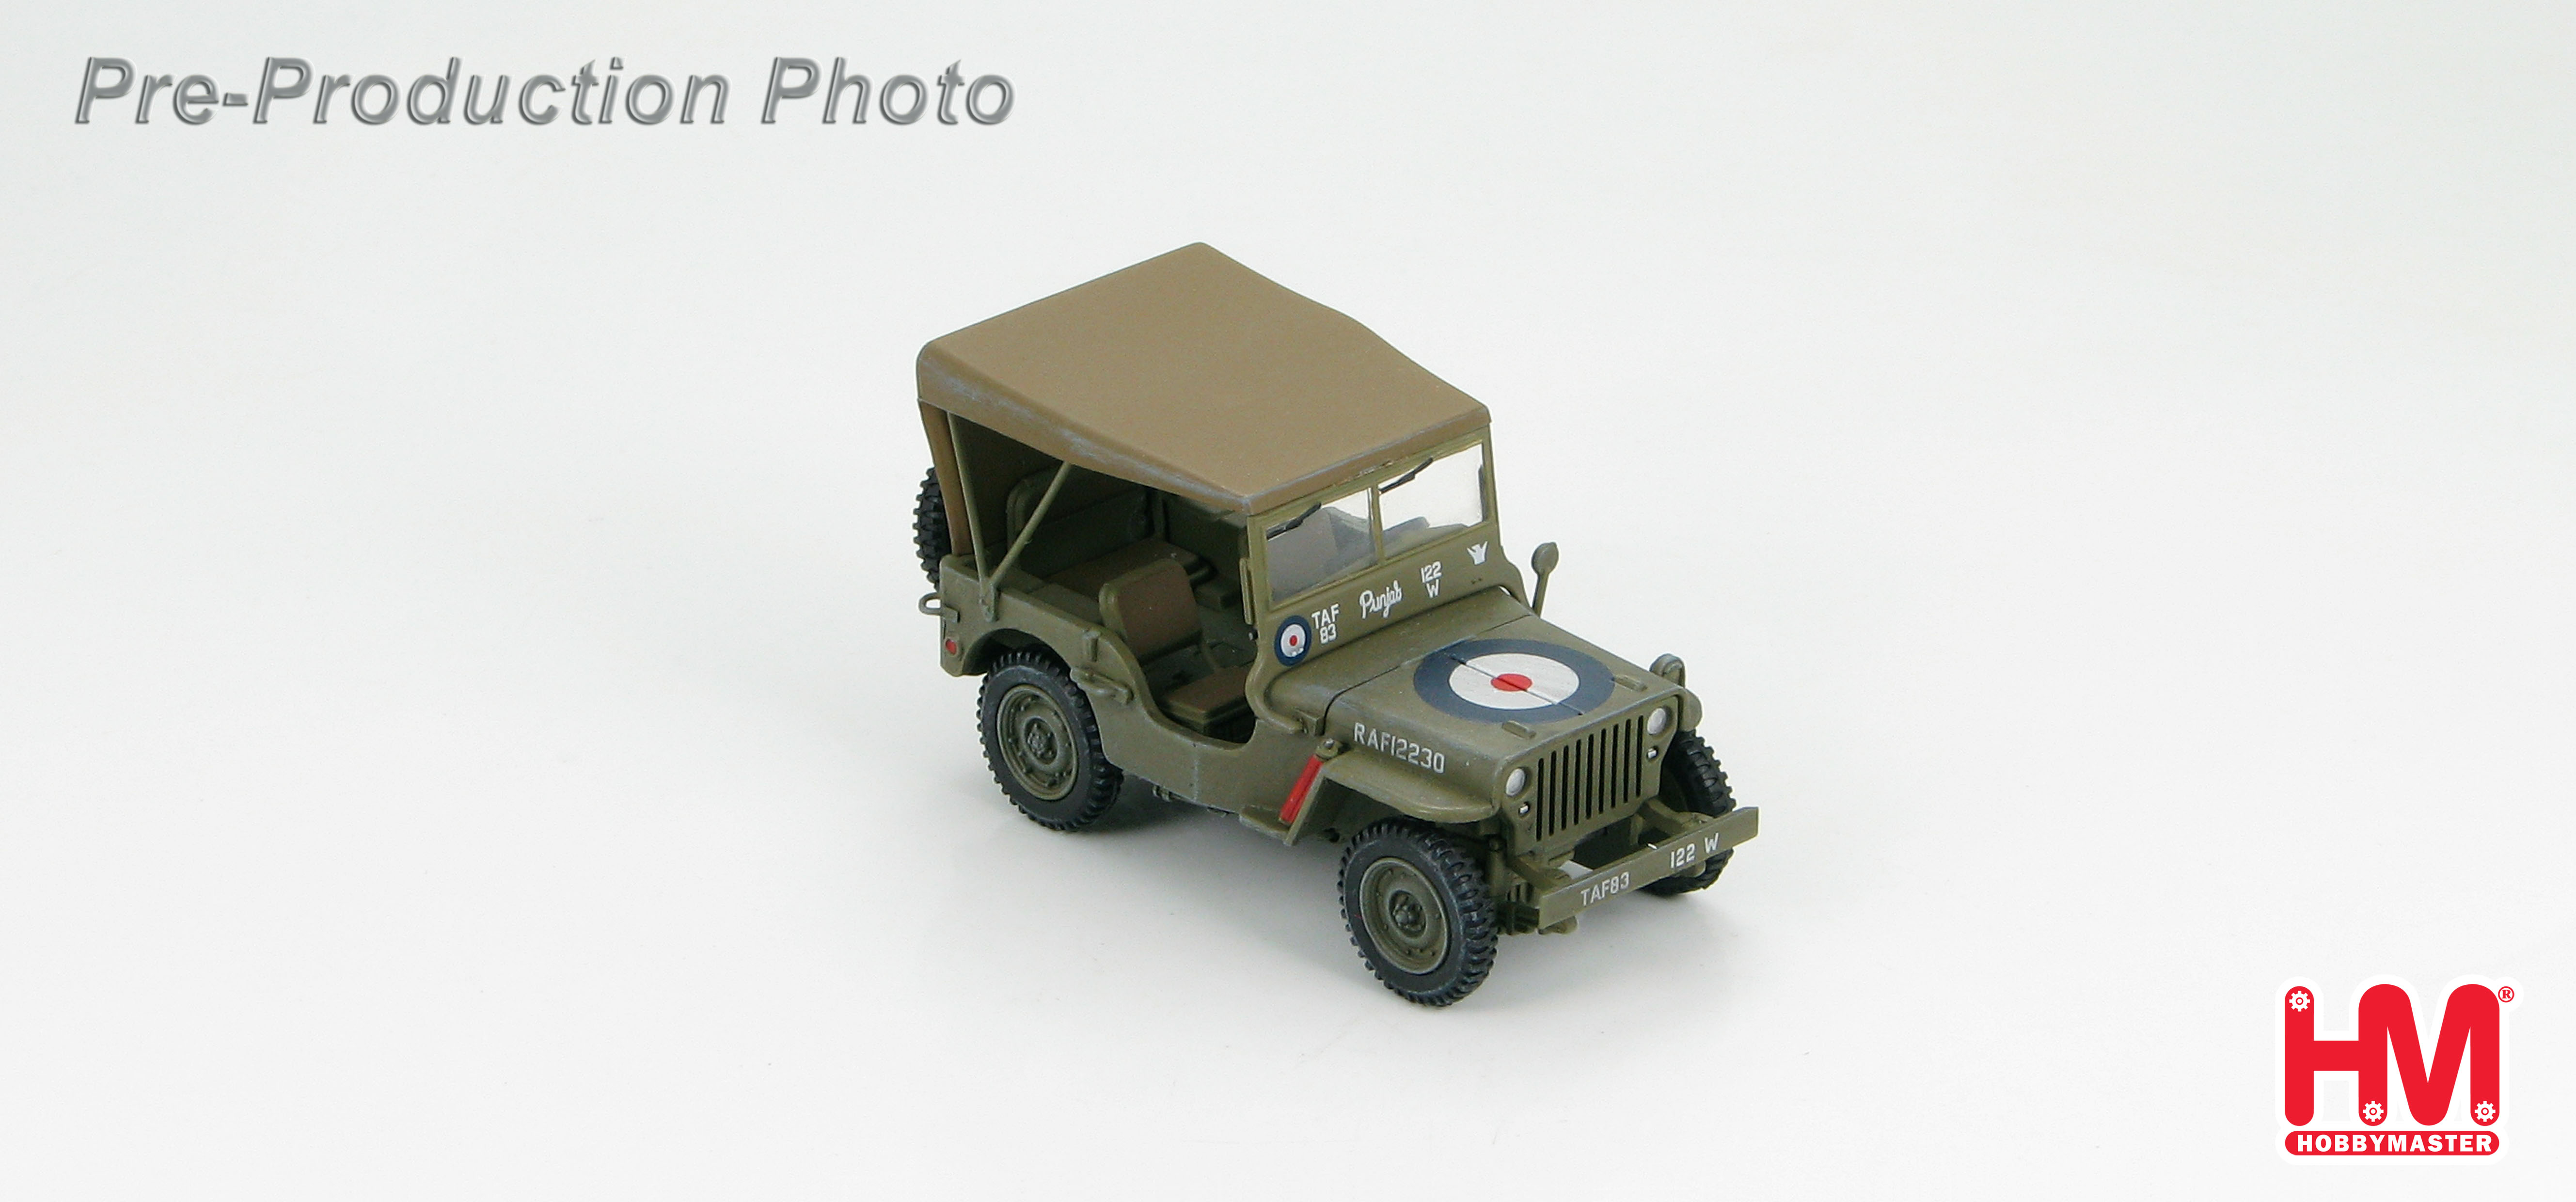 Hobby Master 1 48 Ground Power Series Hg1603 Willys Mb Jeep Raf 97 Hyundai Accent Fuse Box 12230 Wwii